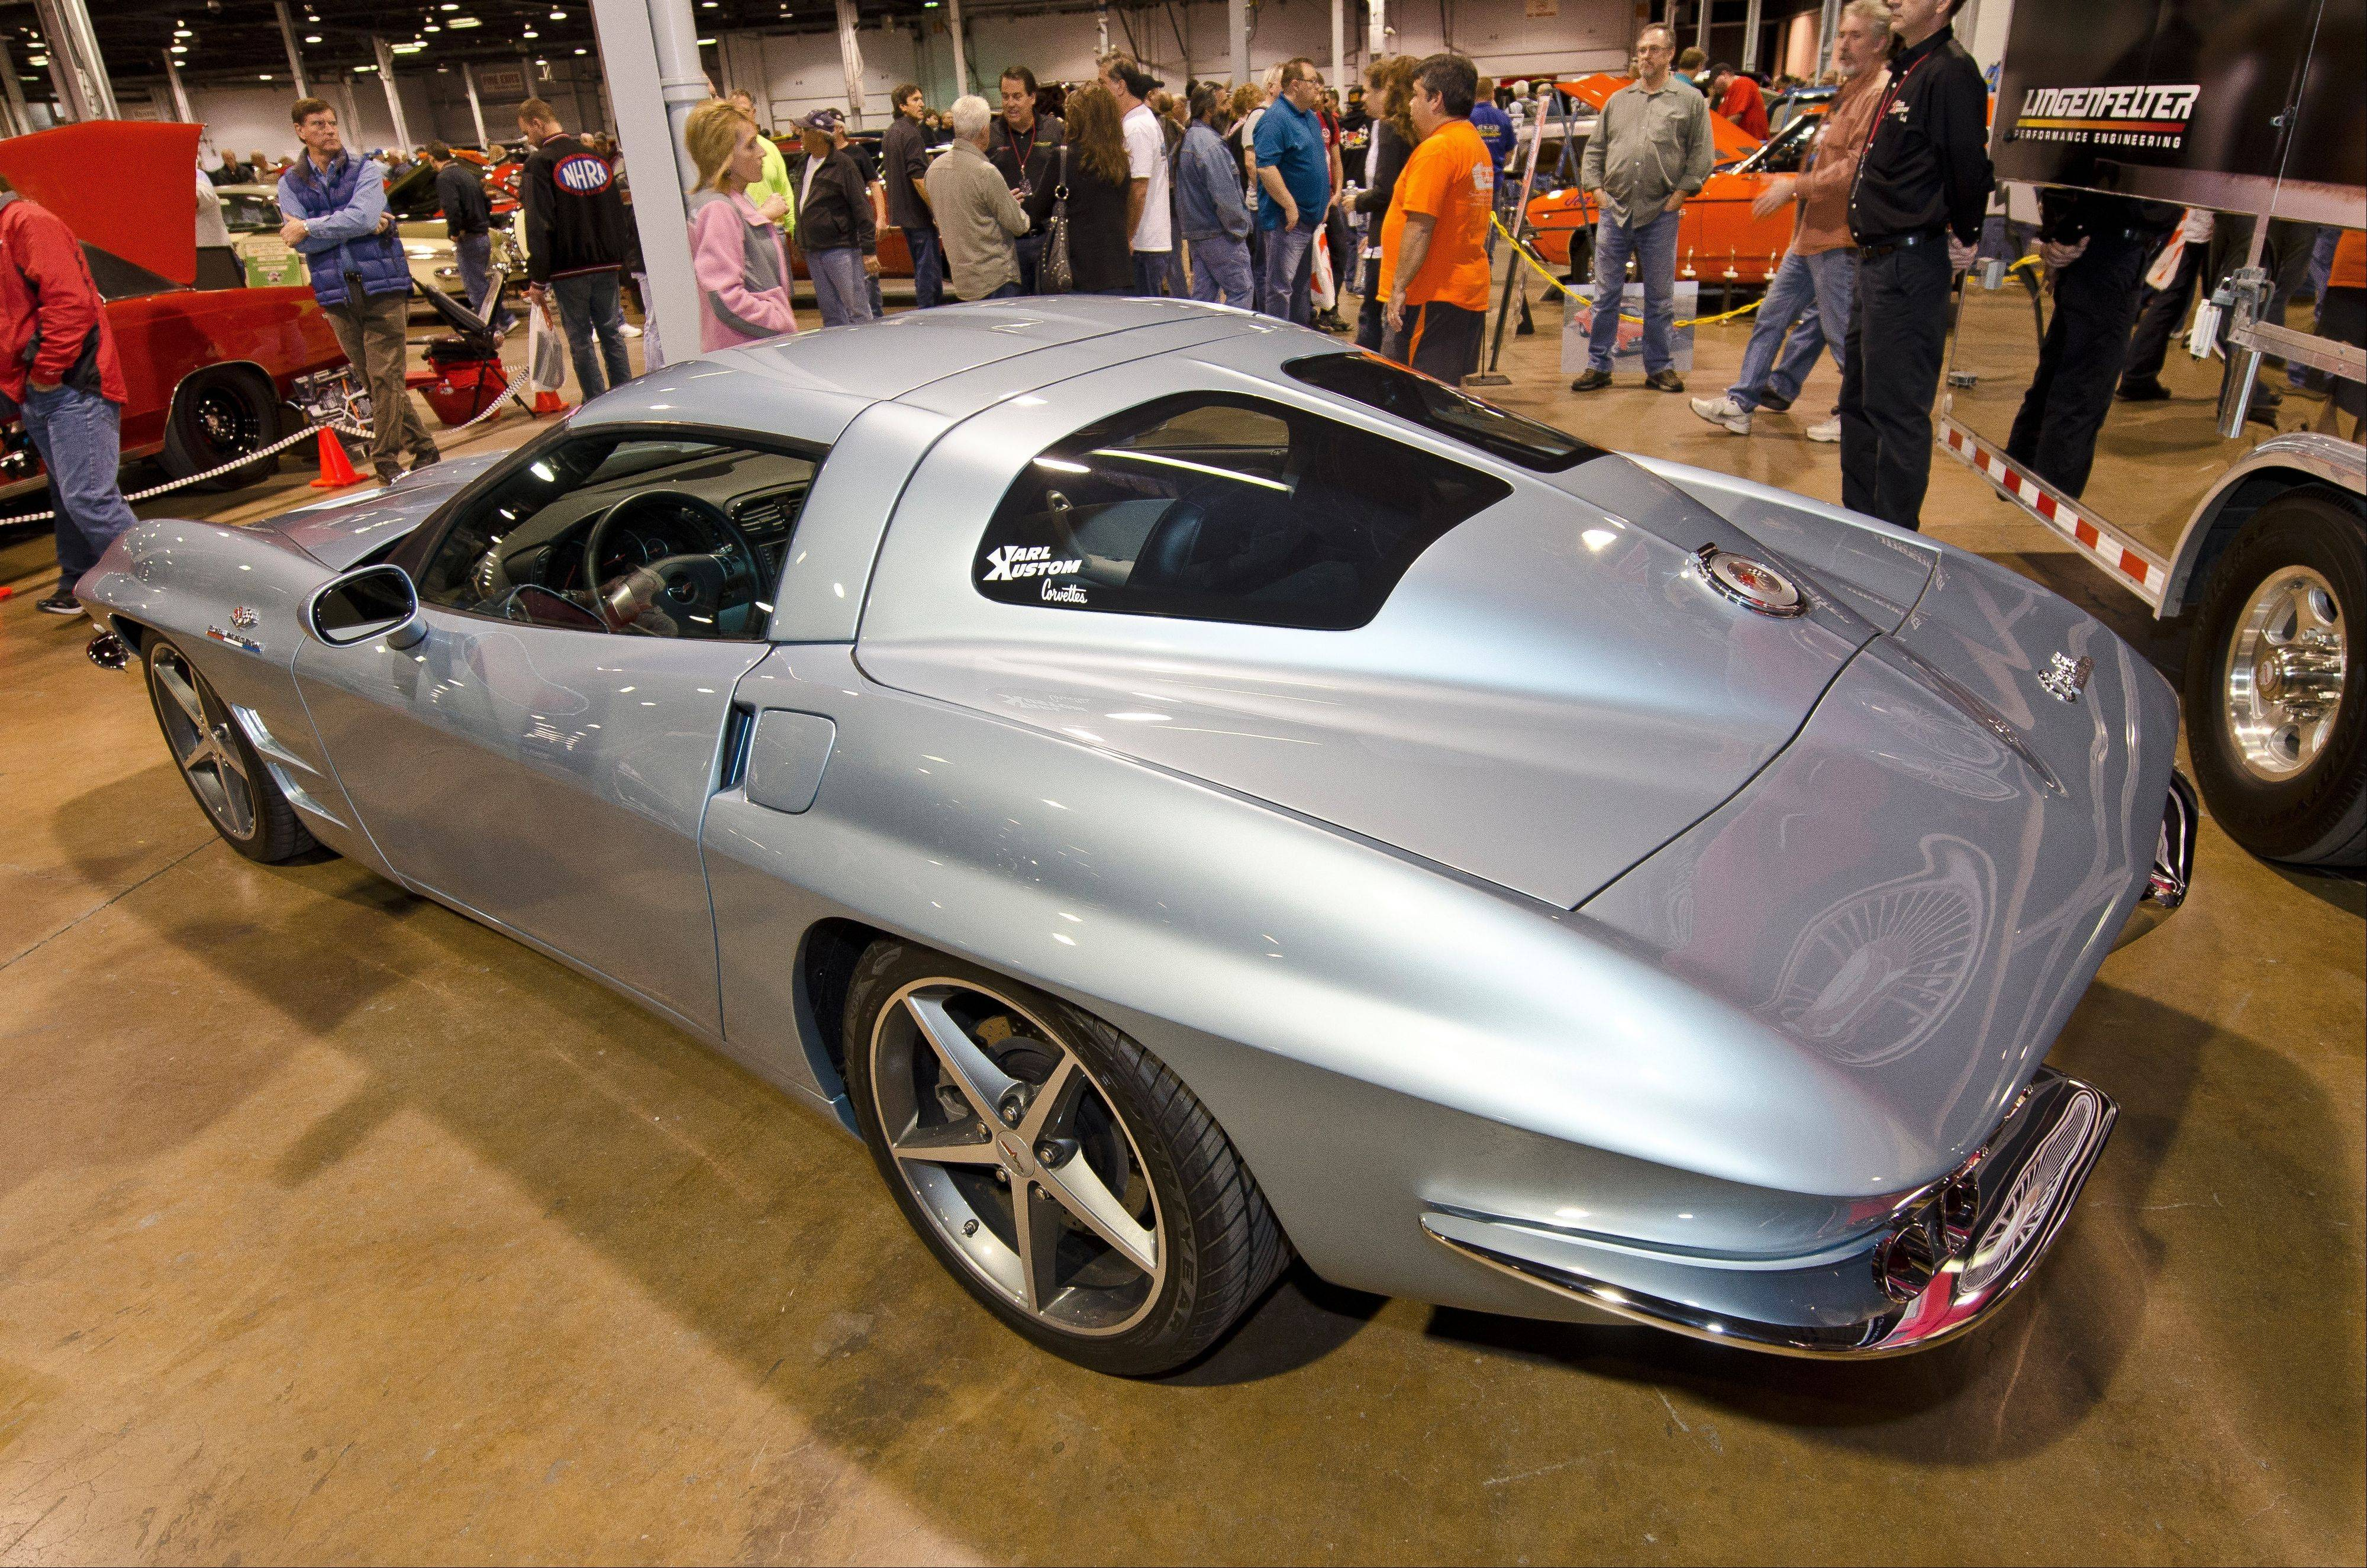 Corvette by Karl Kustom Corvettes.